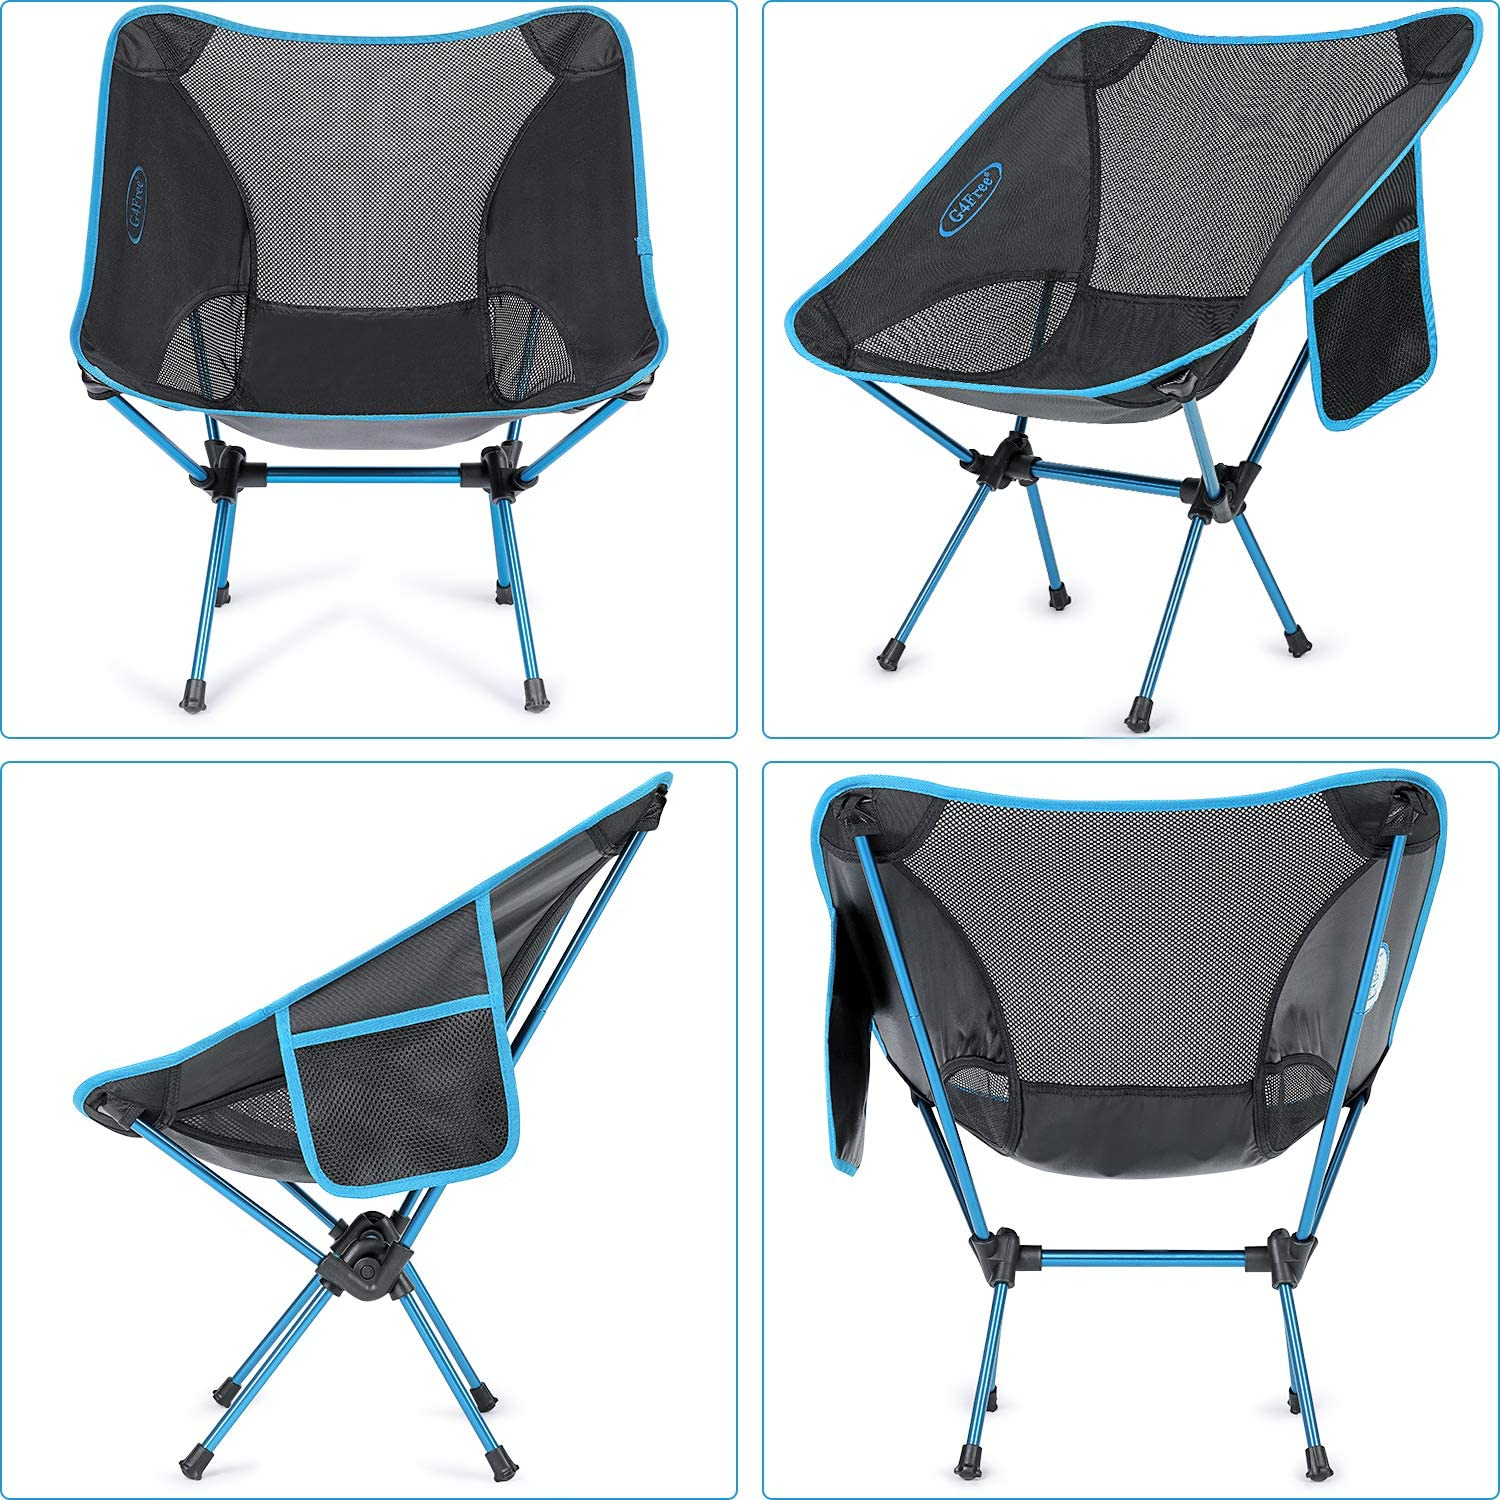 Camping Folding Compact Backpacking Chairs Heavy Duty Ultralight for Outdoor G4Free Upgraded Portable Camp Chair Hiking Travel Beach Picnic Festival